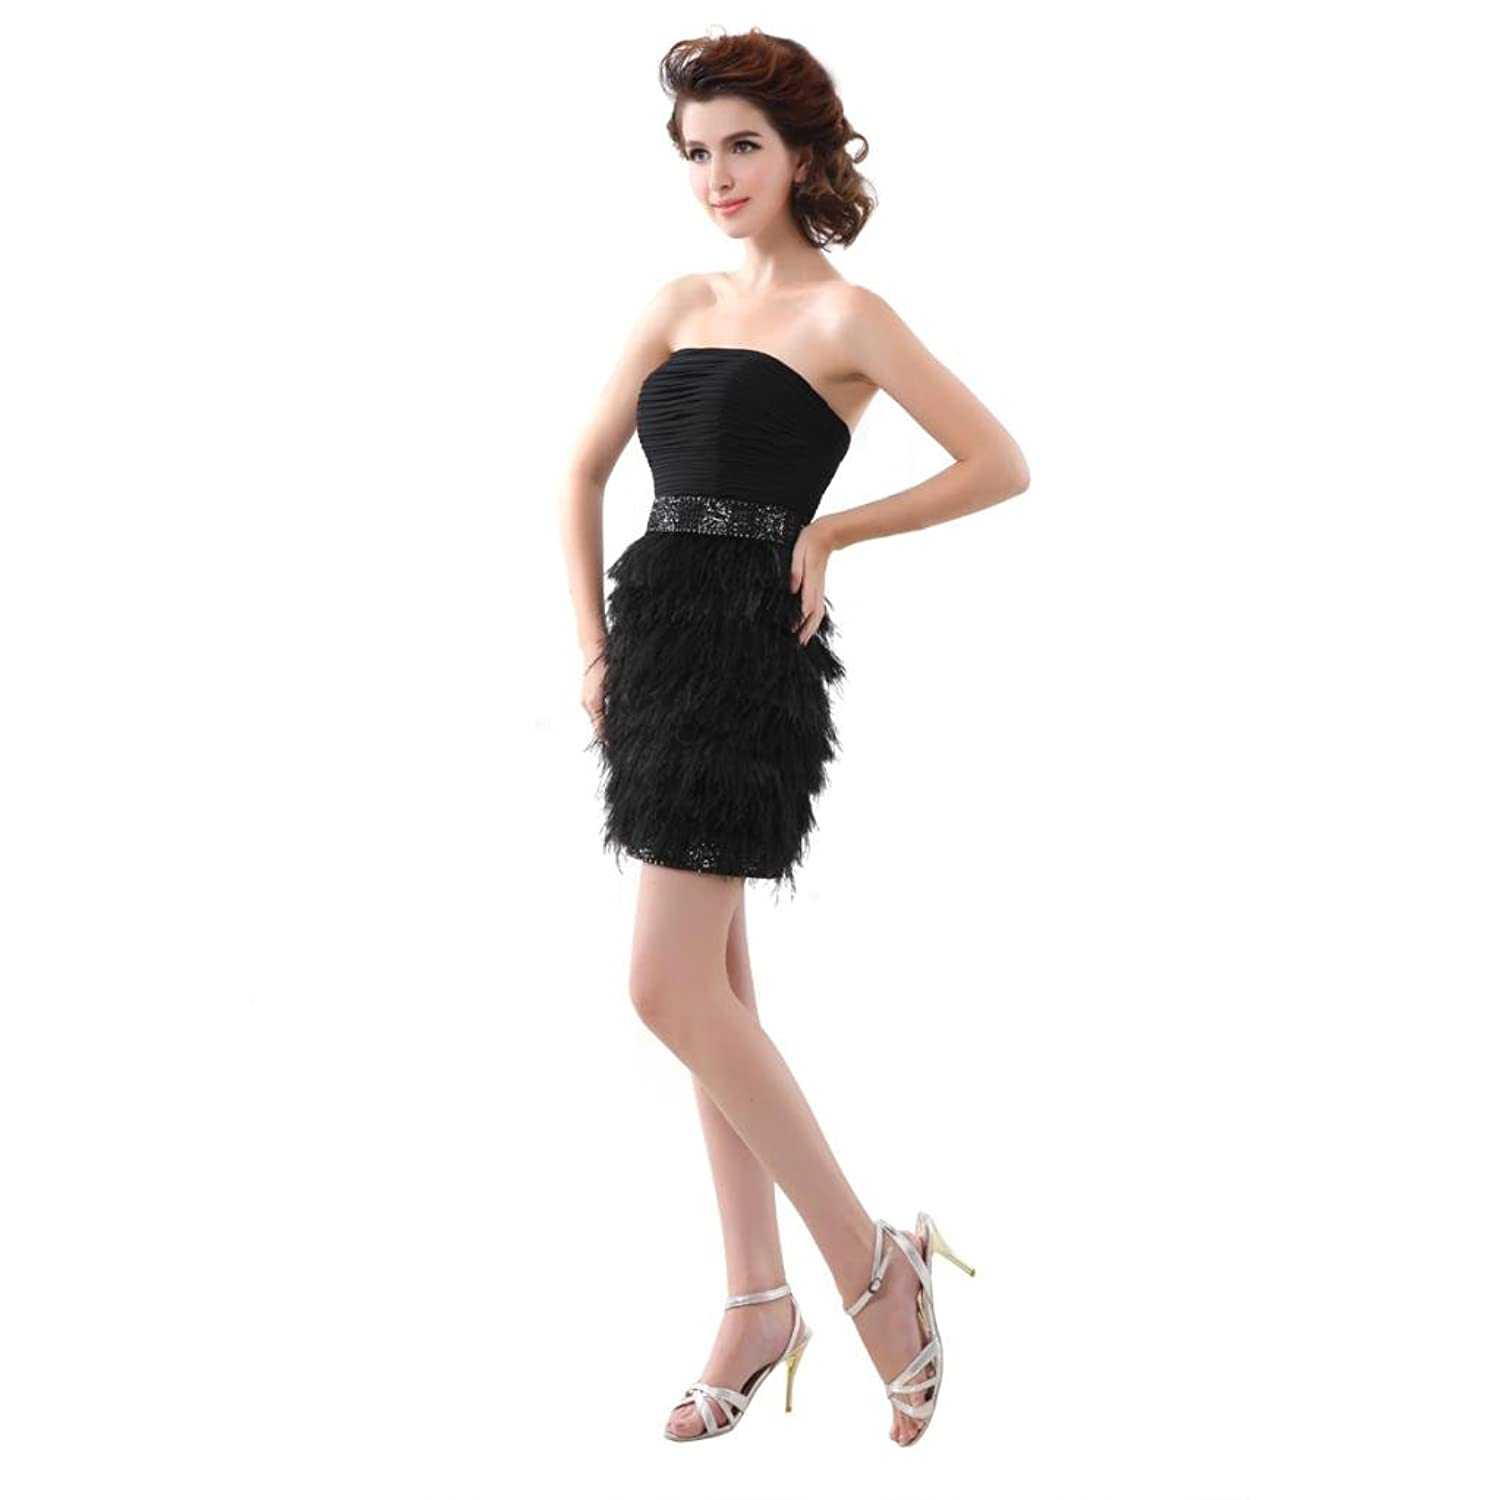 Favebridal Women's Strapless Mini Tiered Homecoming Cocktail Dress